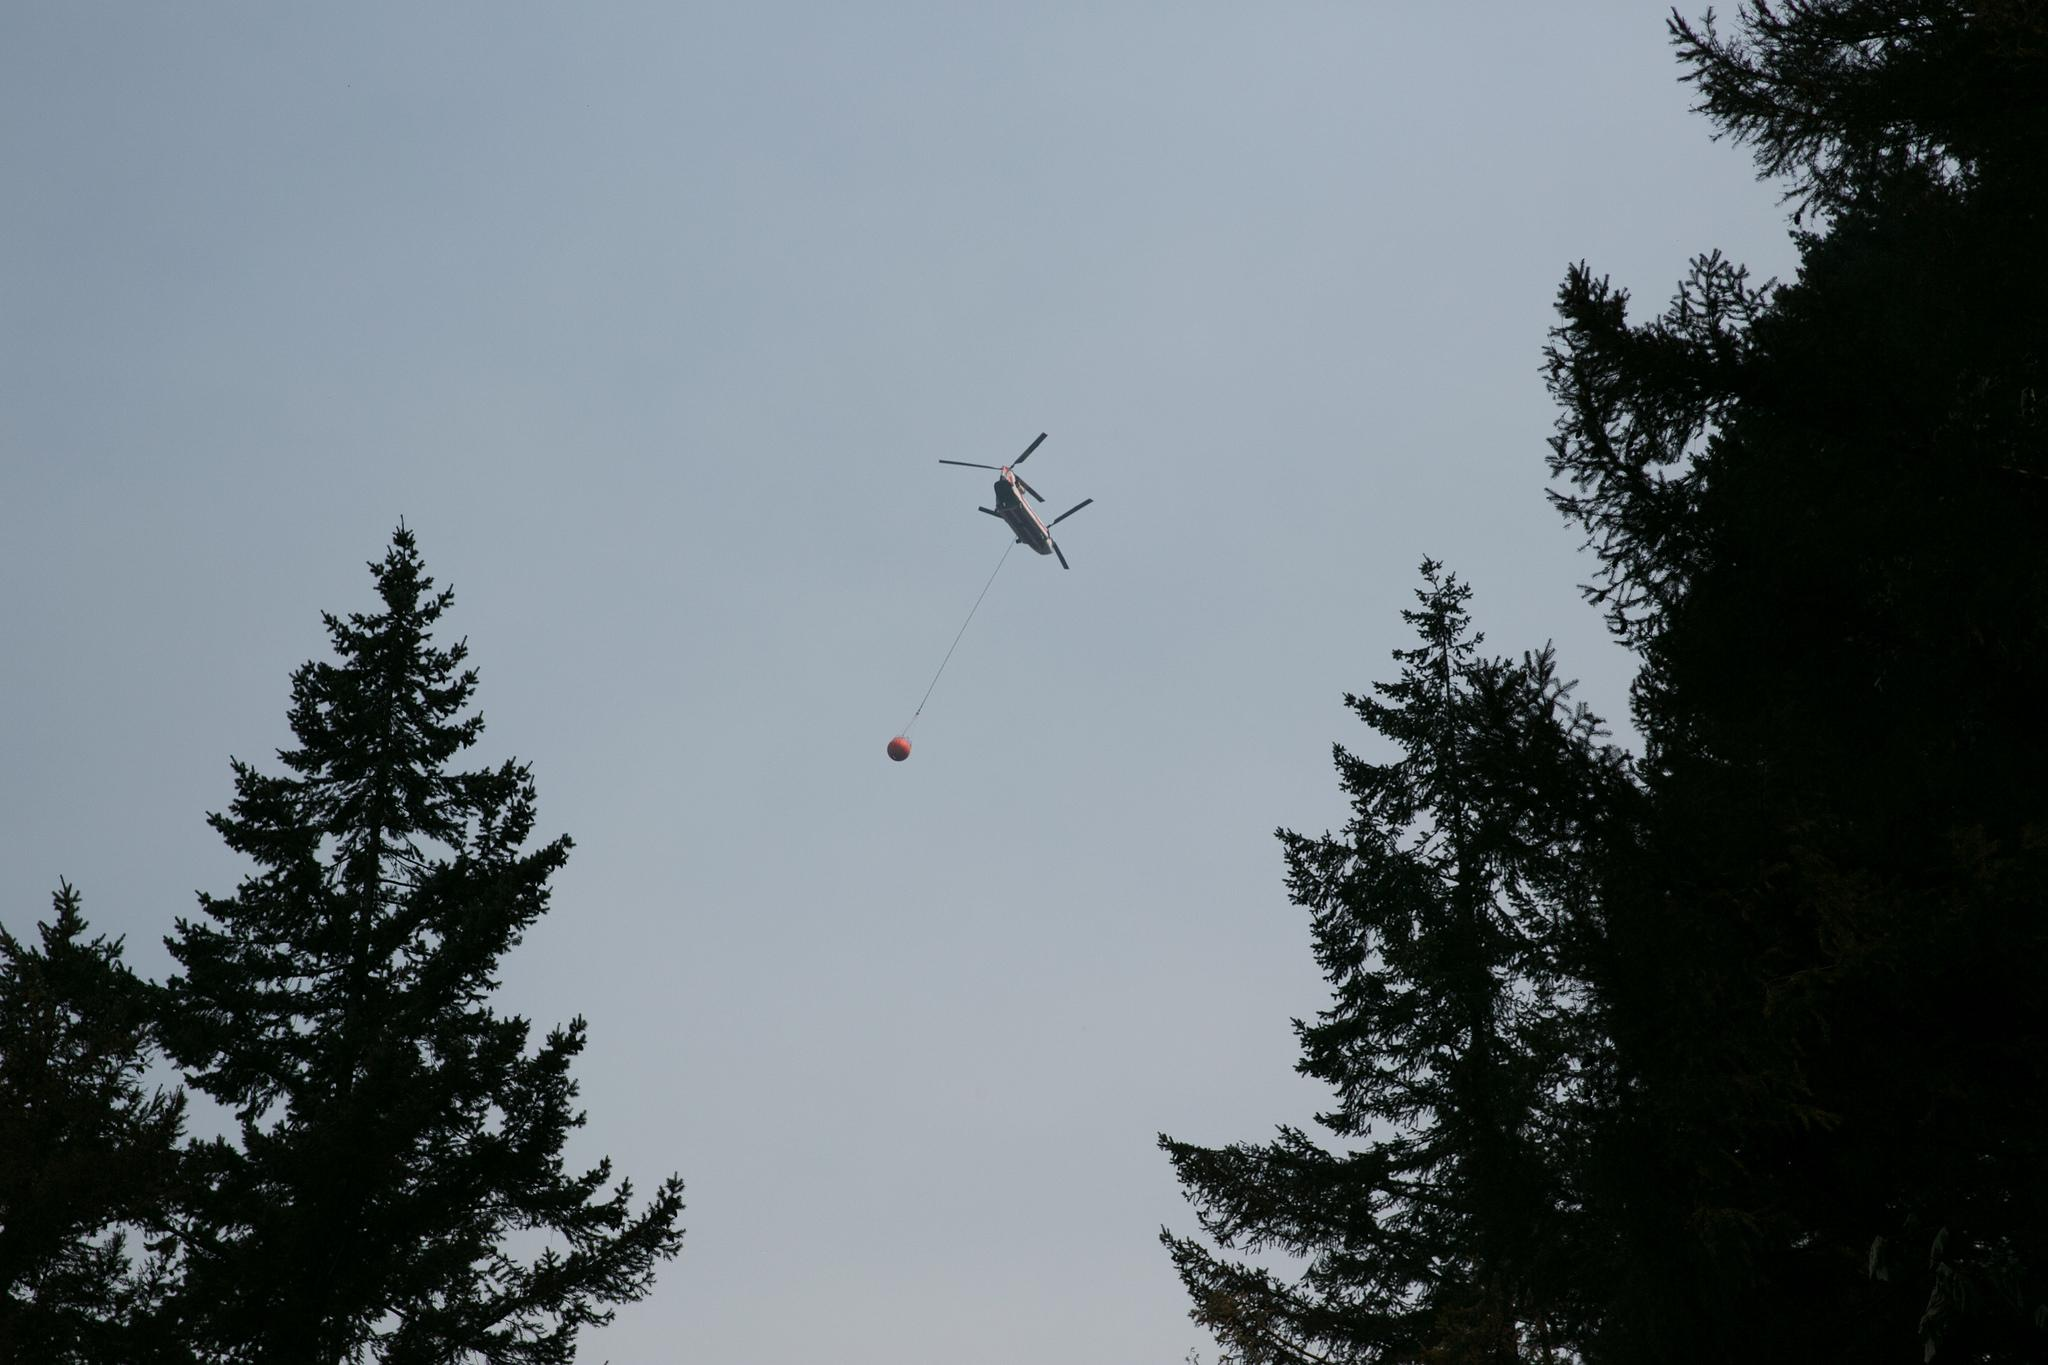 More than 900 firefighters are working to contain the Eagle Creek Fire in the Columbia River Gorge, which broke out September 2 and is believed to have been started by a 15-year-old with fireworks. (Photo courtesy Multnomah County Communications taken 9-11-2017)